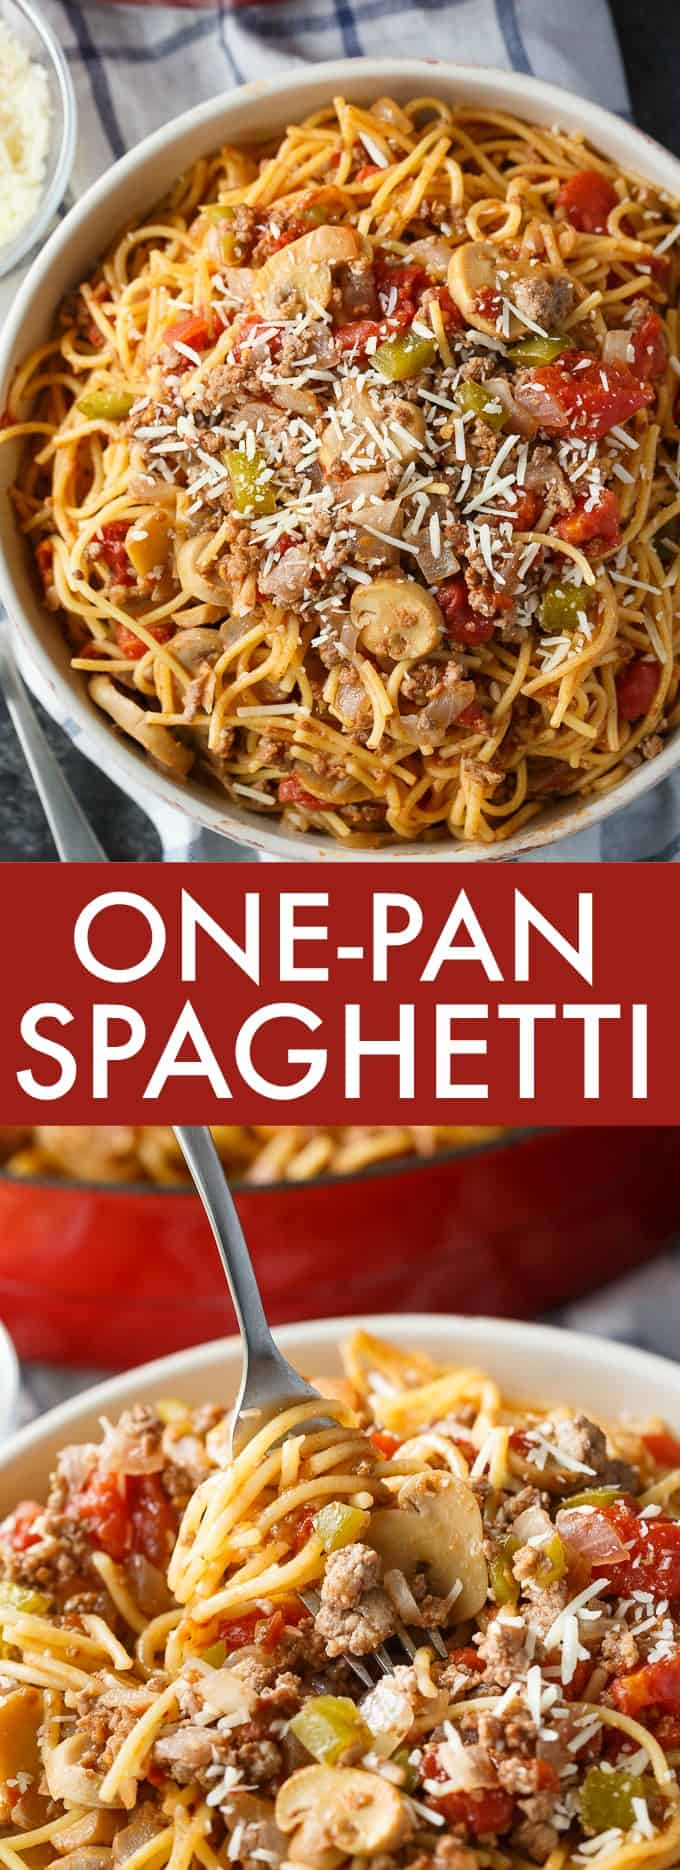 One-Pan Spaghetti - The best way to make spaghetti for dinner! Less mess and so easy to make.